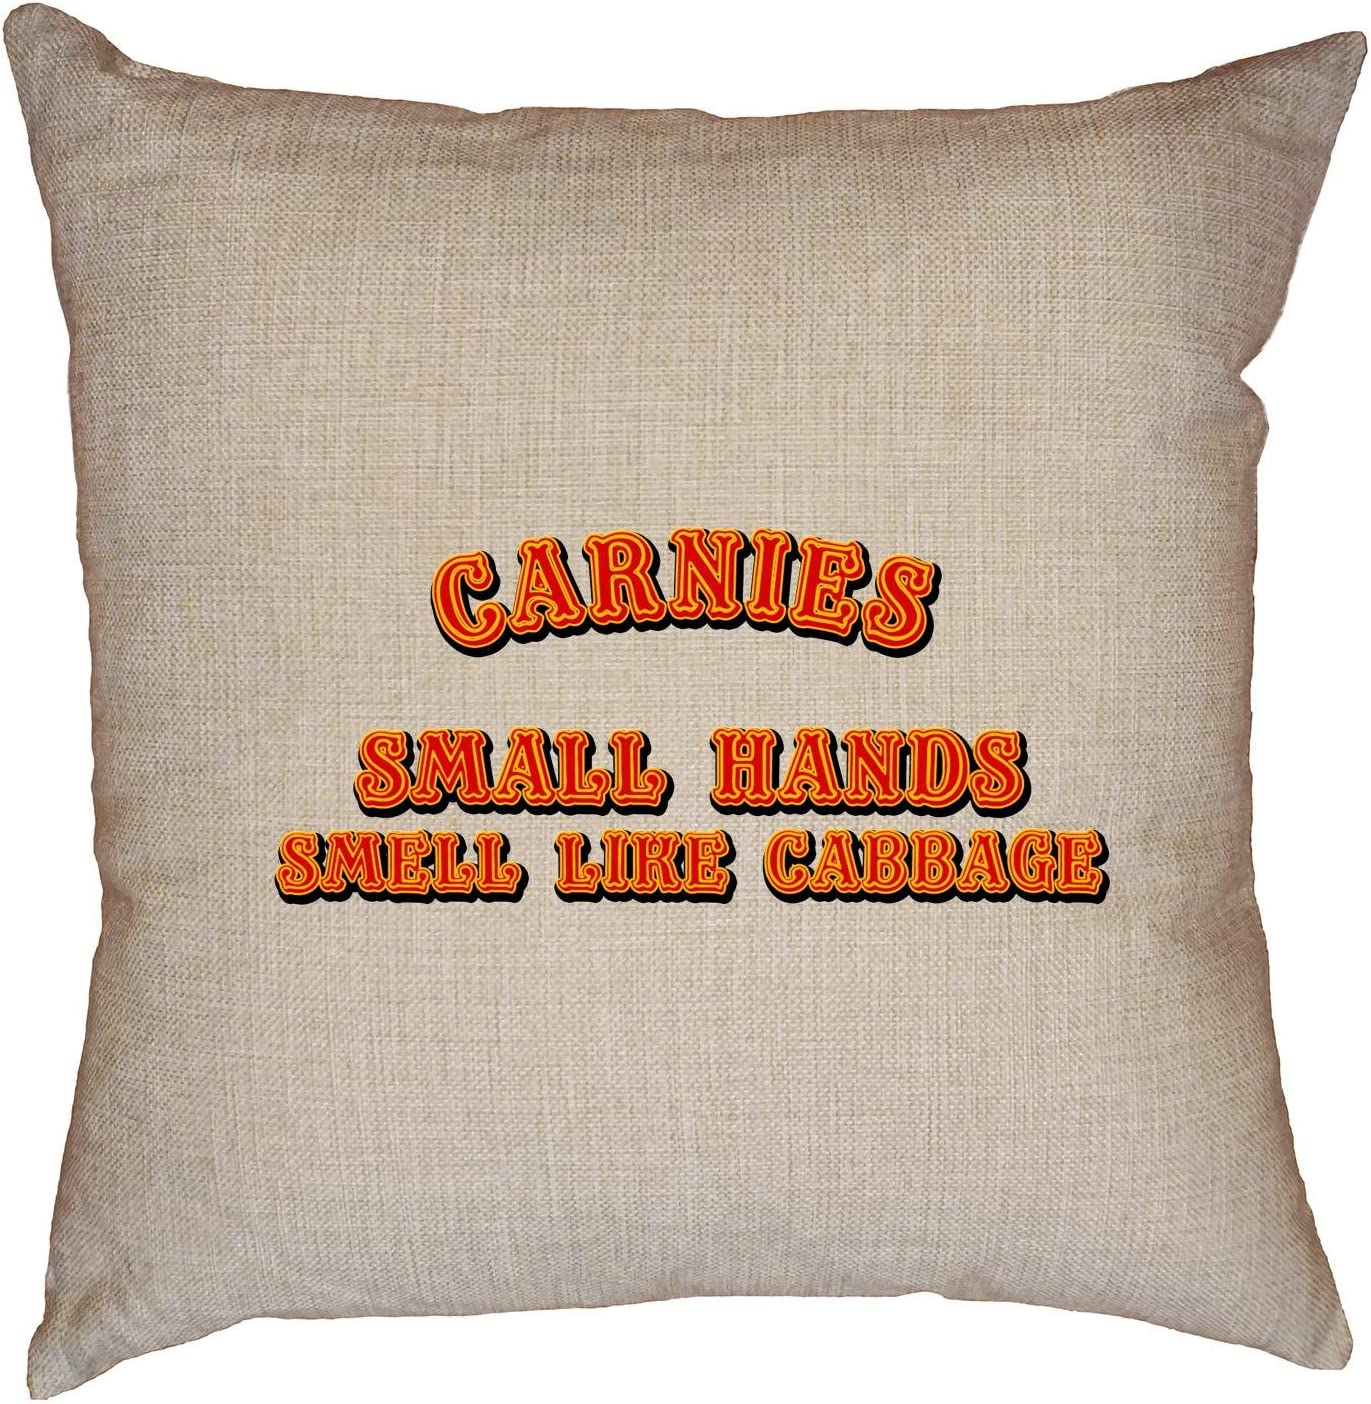 Amazon Com Hollywood Thread Carnies Small Hands Smell Like Cabbage Decorative Linen Throw Cushion Pillow Case With Insert Home Kitchen